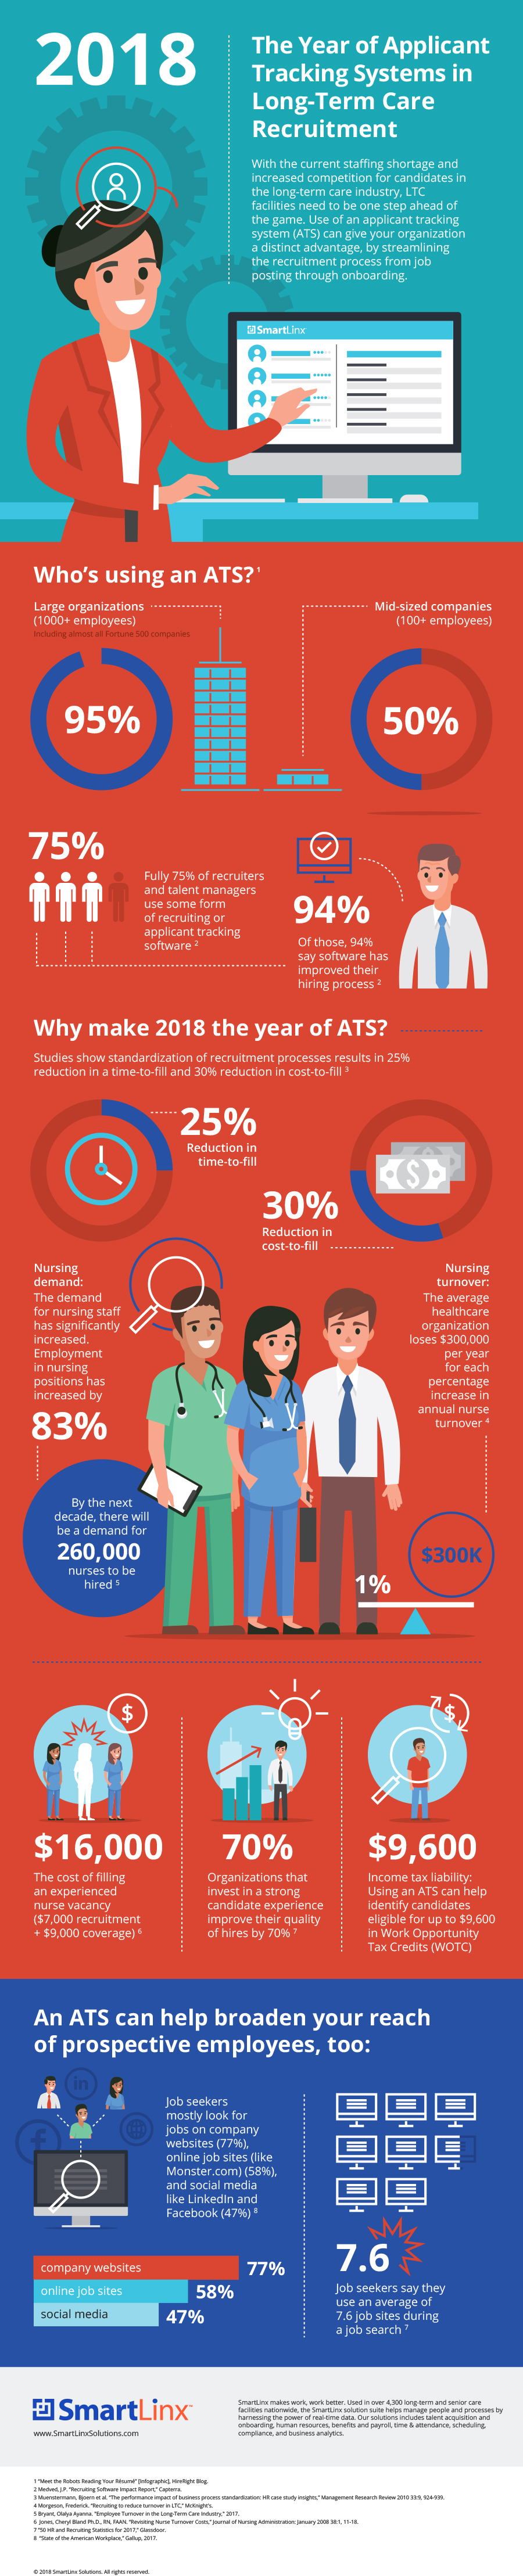 Infographic - 2018 the Year of Applicant Tracking Systems (ATS) for Long-Term Care and Healthcare